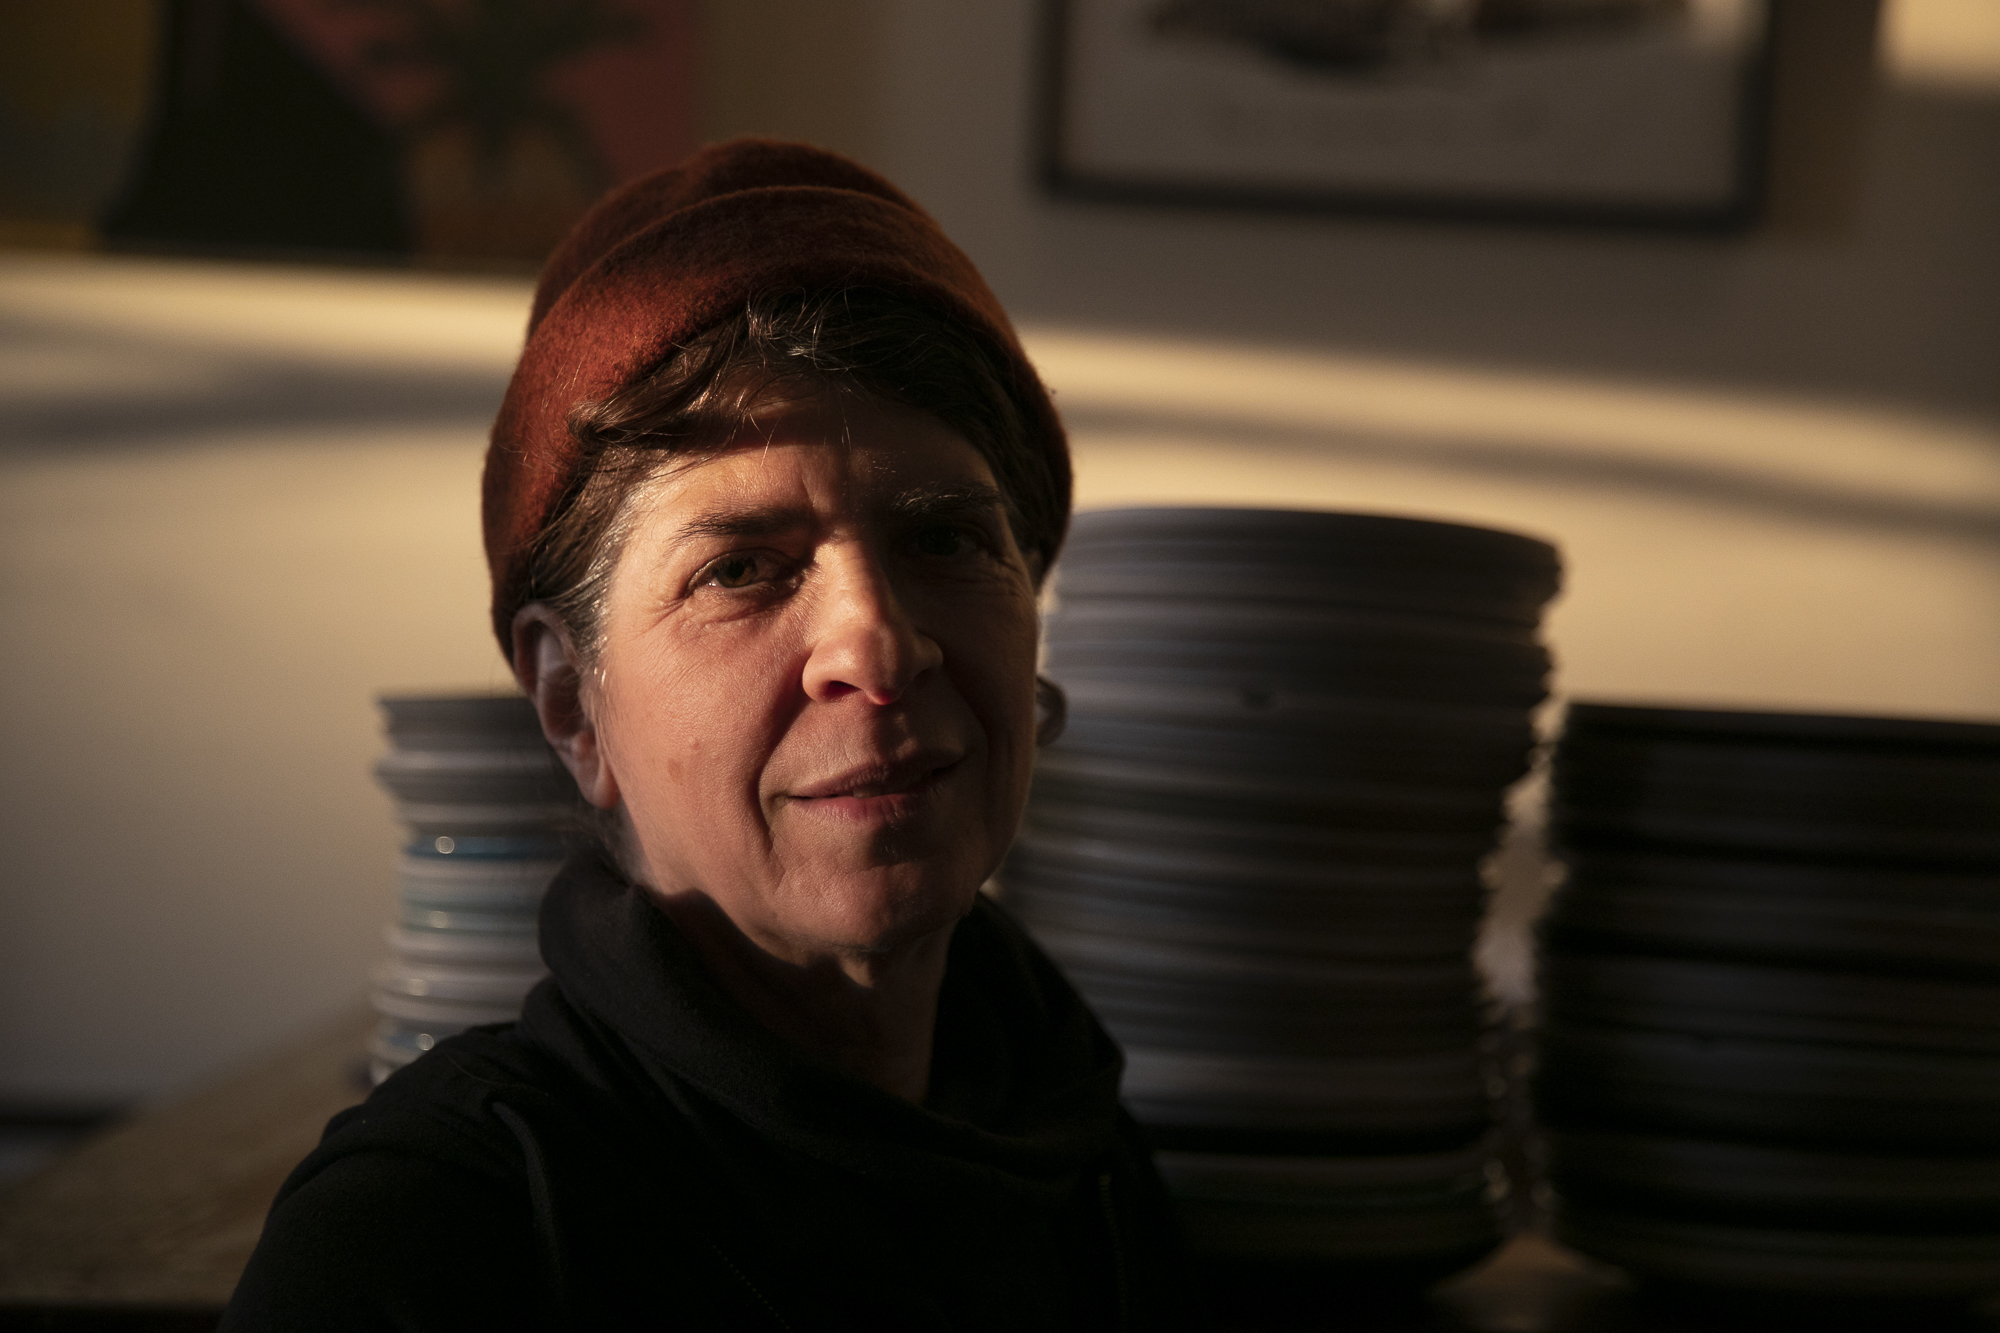 """Pizzaiolo part owner Donna Insalaco hopes that the business will be able to survive the shelter in place order. """"We had to lay off everybody that is not a salaried employee"""" she said, """"we were all crying today."""" Photo by Anne Wernikoff for CalMatters"""